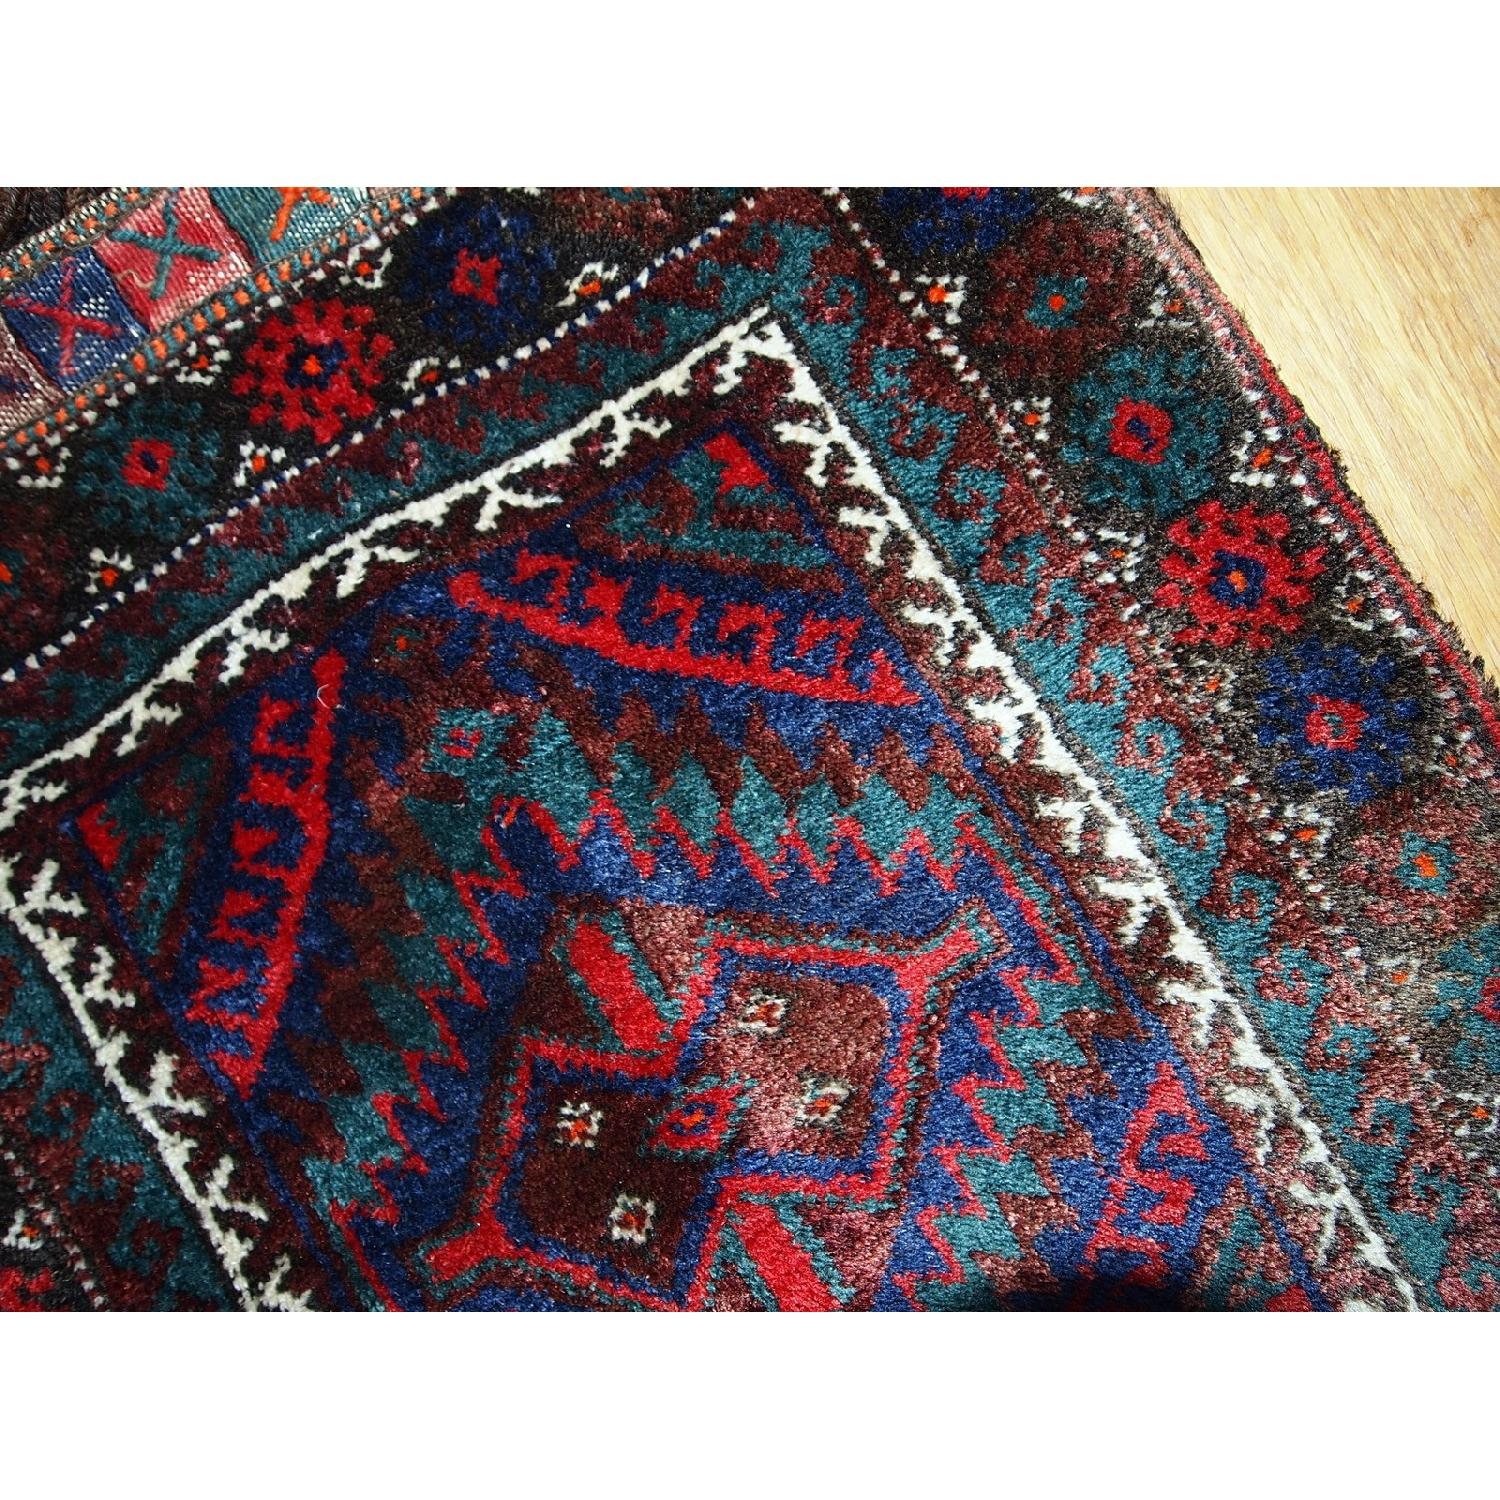 Antique Handmade Persian Kurdish Salt Bag Rug - image-10